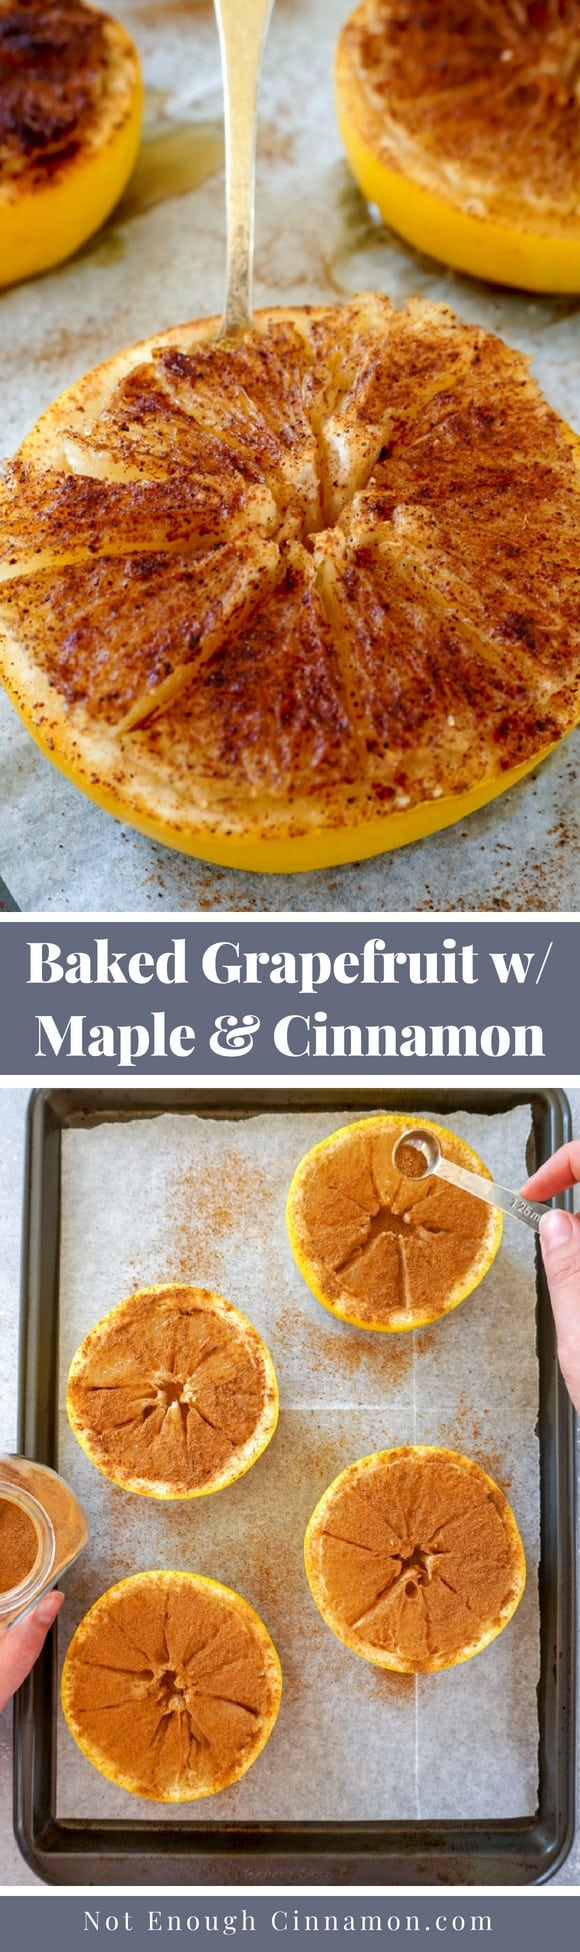 A super easy healthy breakfast or dessert, this baked grapefruit with maple syrup and cinnamon takes minutes to make. Recipe on NotEnoughCinnamon.com #glutenfree #refinedsugarfree #paleo #cleaneating #healthysnack #healthybreakfast #breakfastrecipe